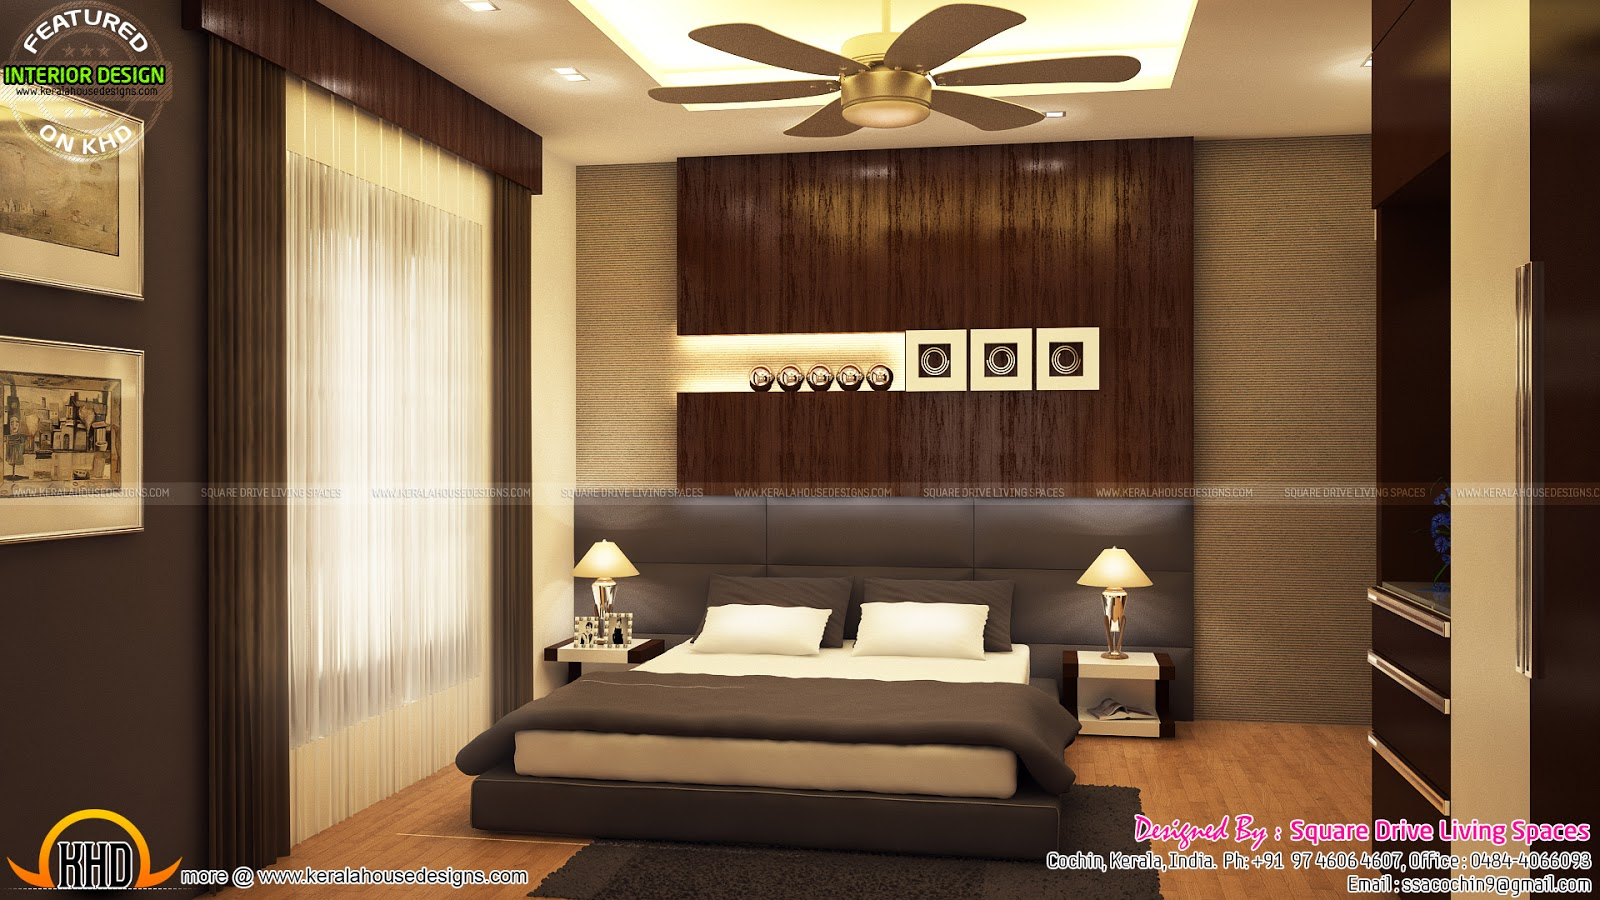 Interior designs of master bedroom living kitchen and for Bedroom interior design